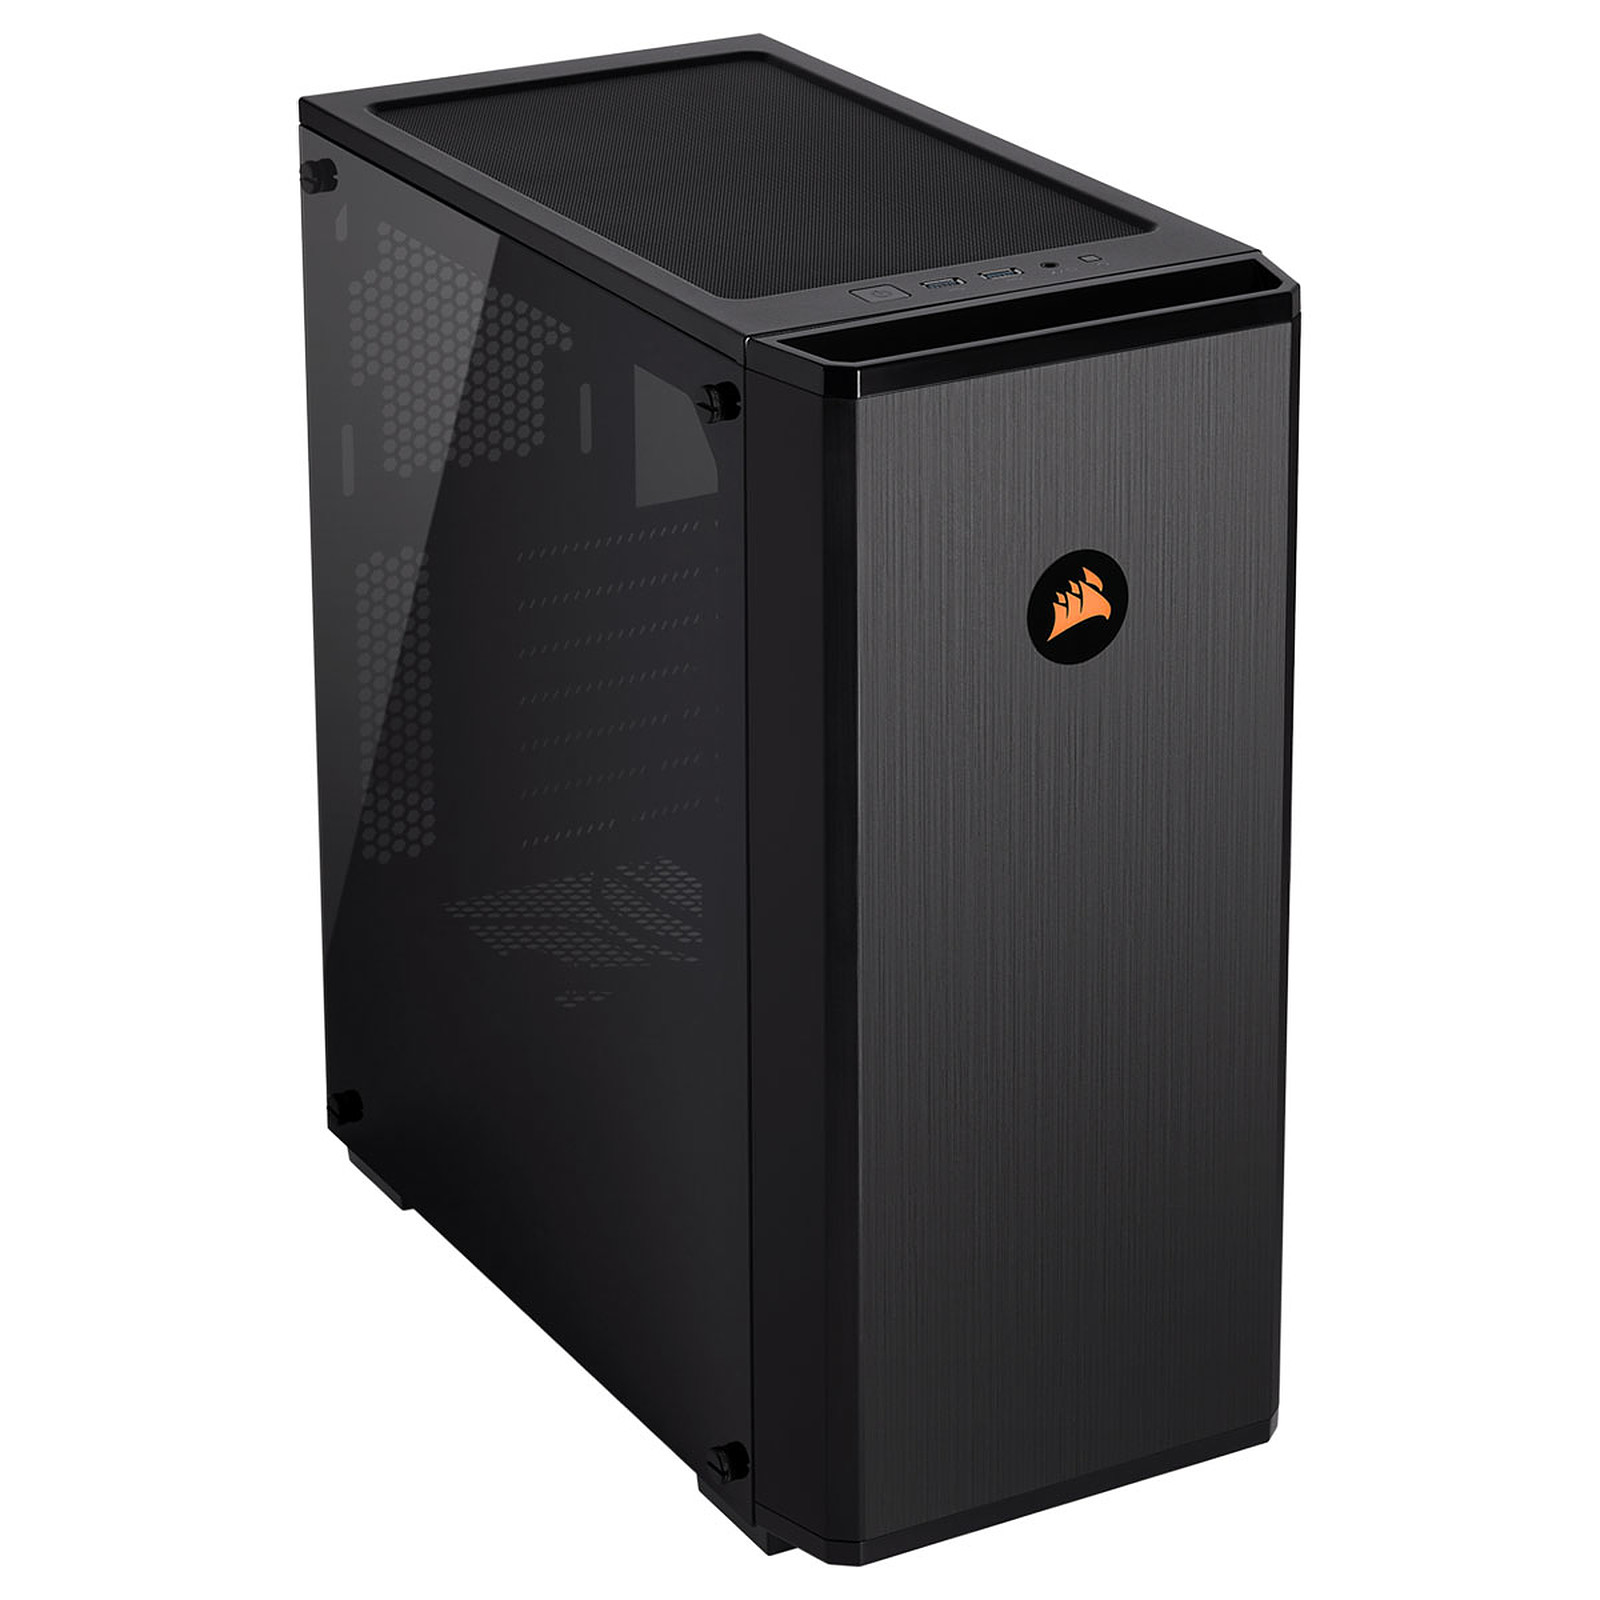 CASE CORSAIR GAMING MIDDLE TOWER 175R RGB CARBIDE SERIES TEMPERED GLASS BLACK CC-9011171-WW ,Case & Power Supply